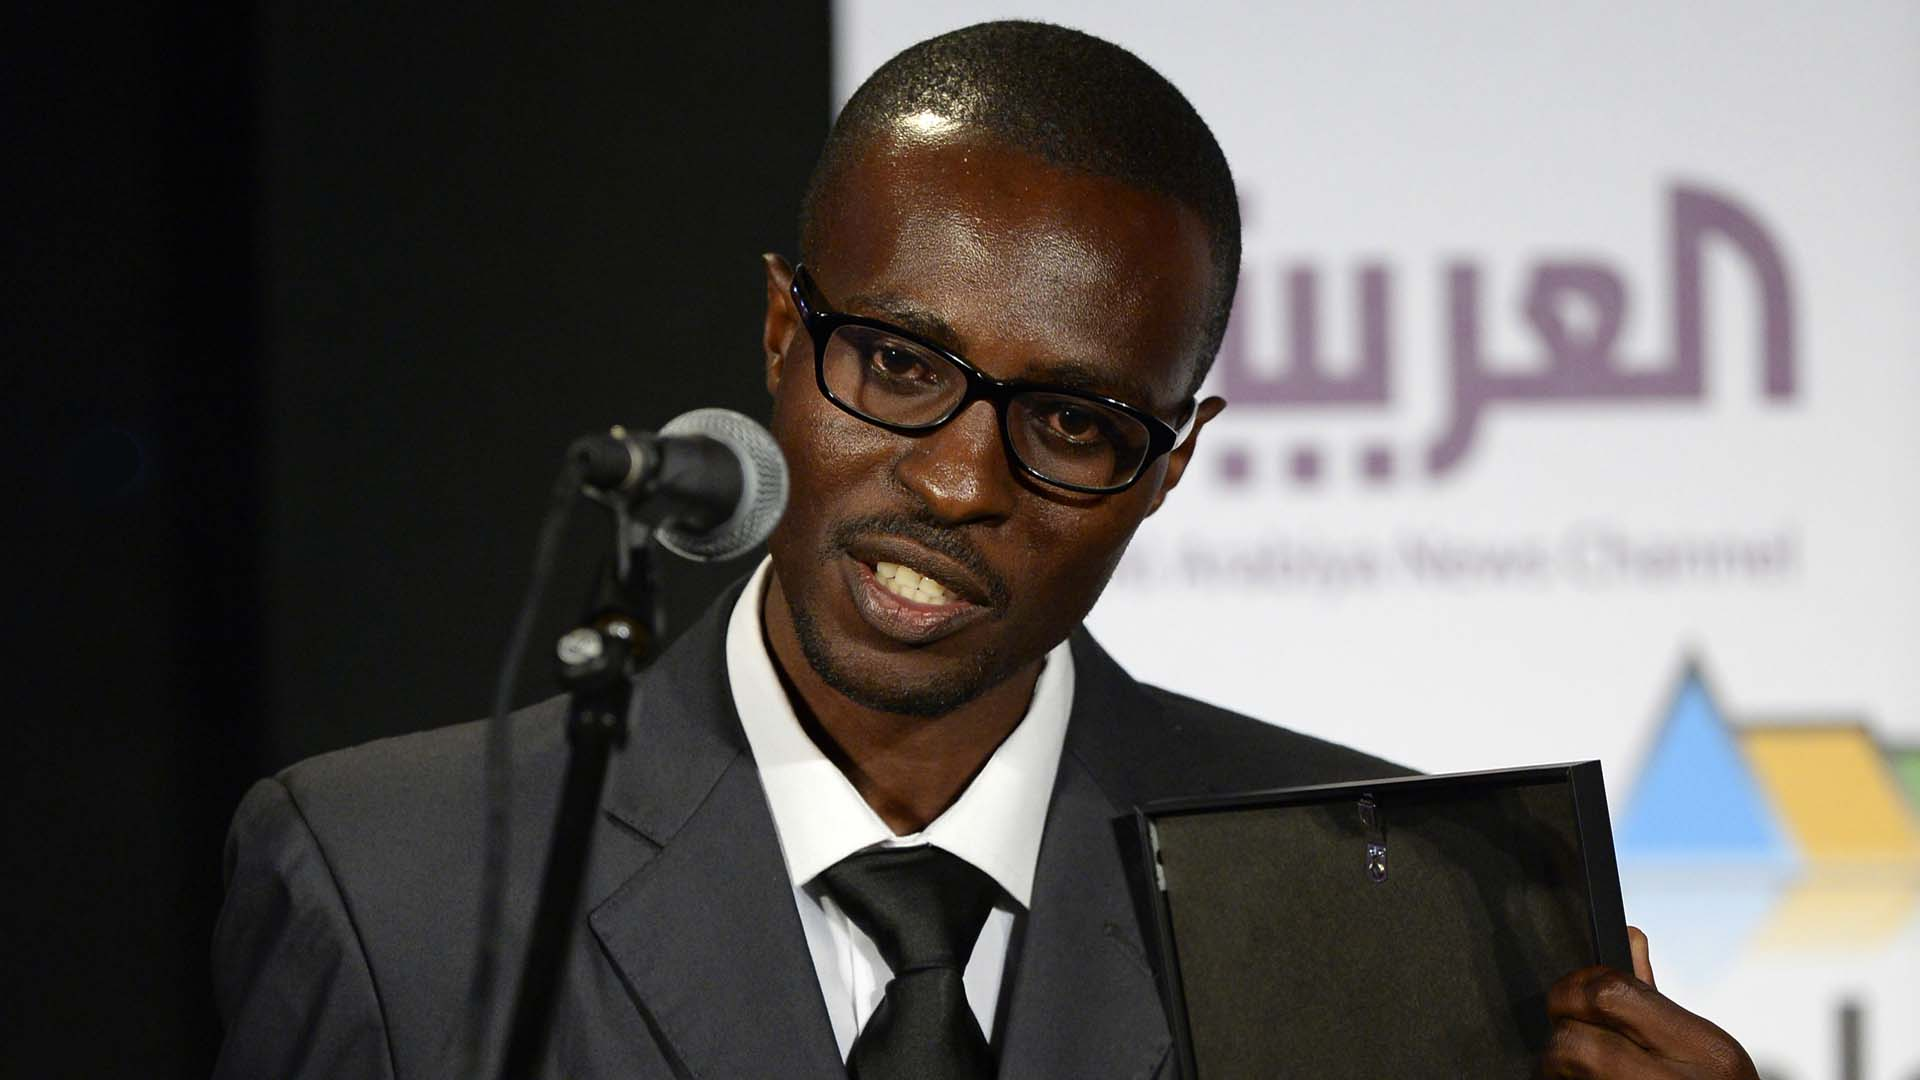 Maurice won the Young Journalist FPA award in 2014